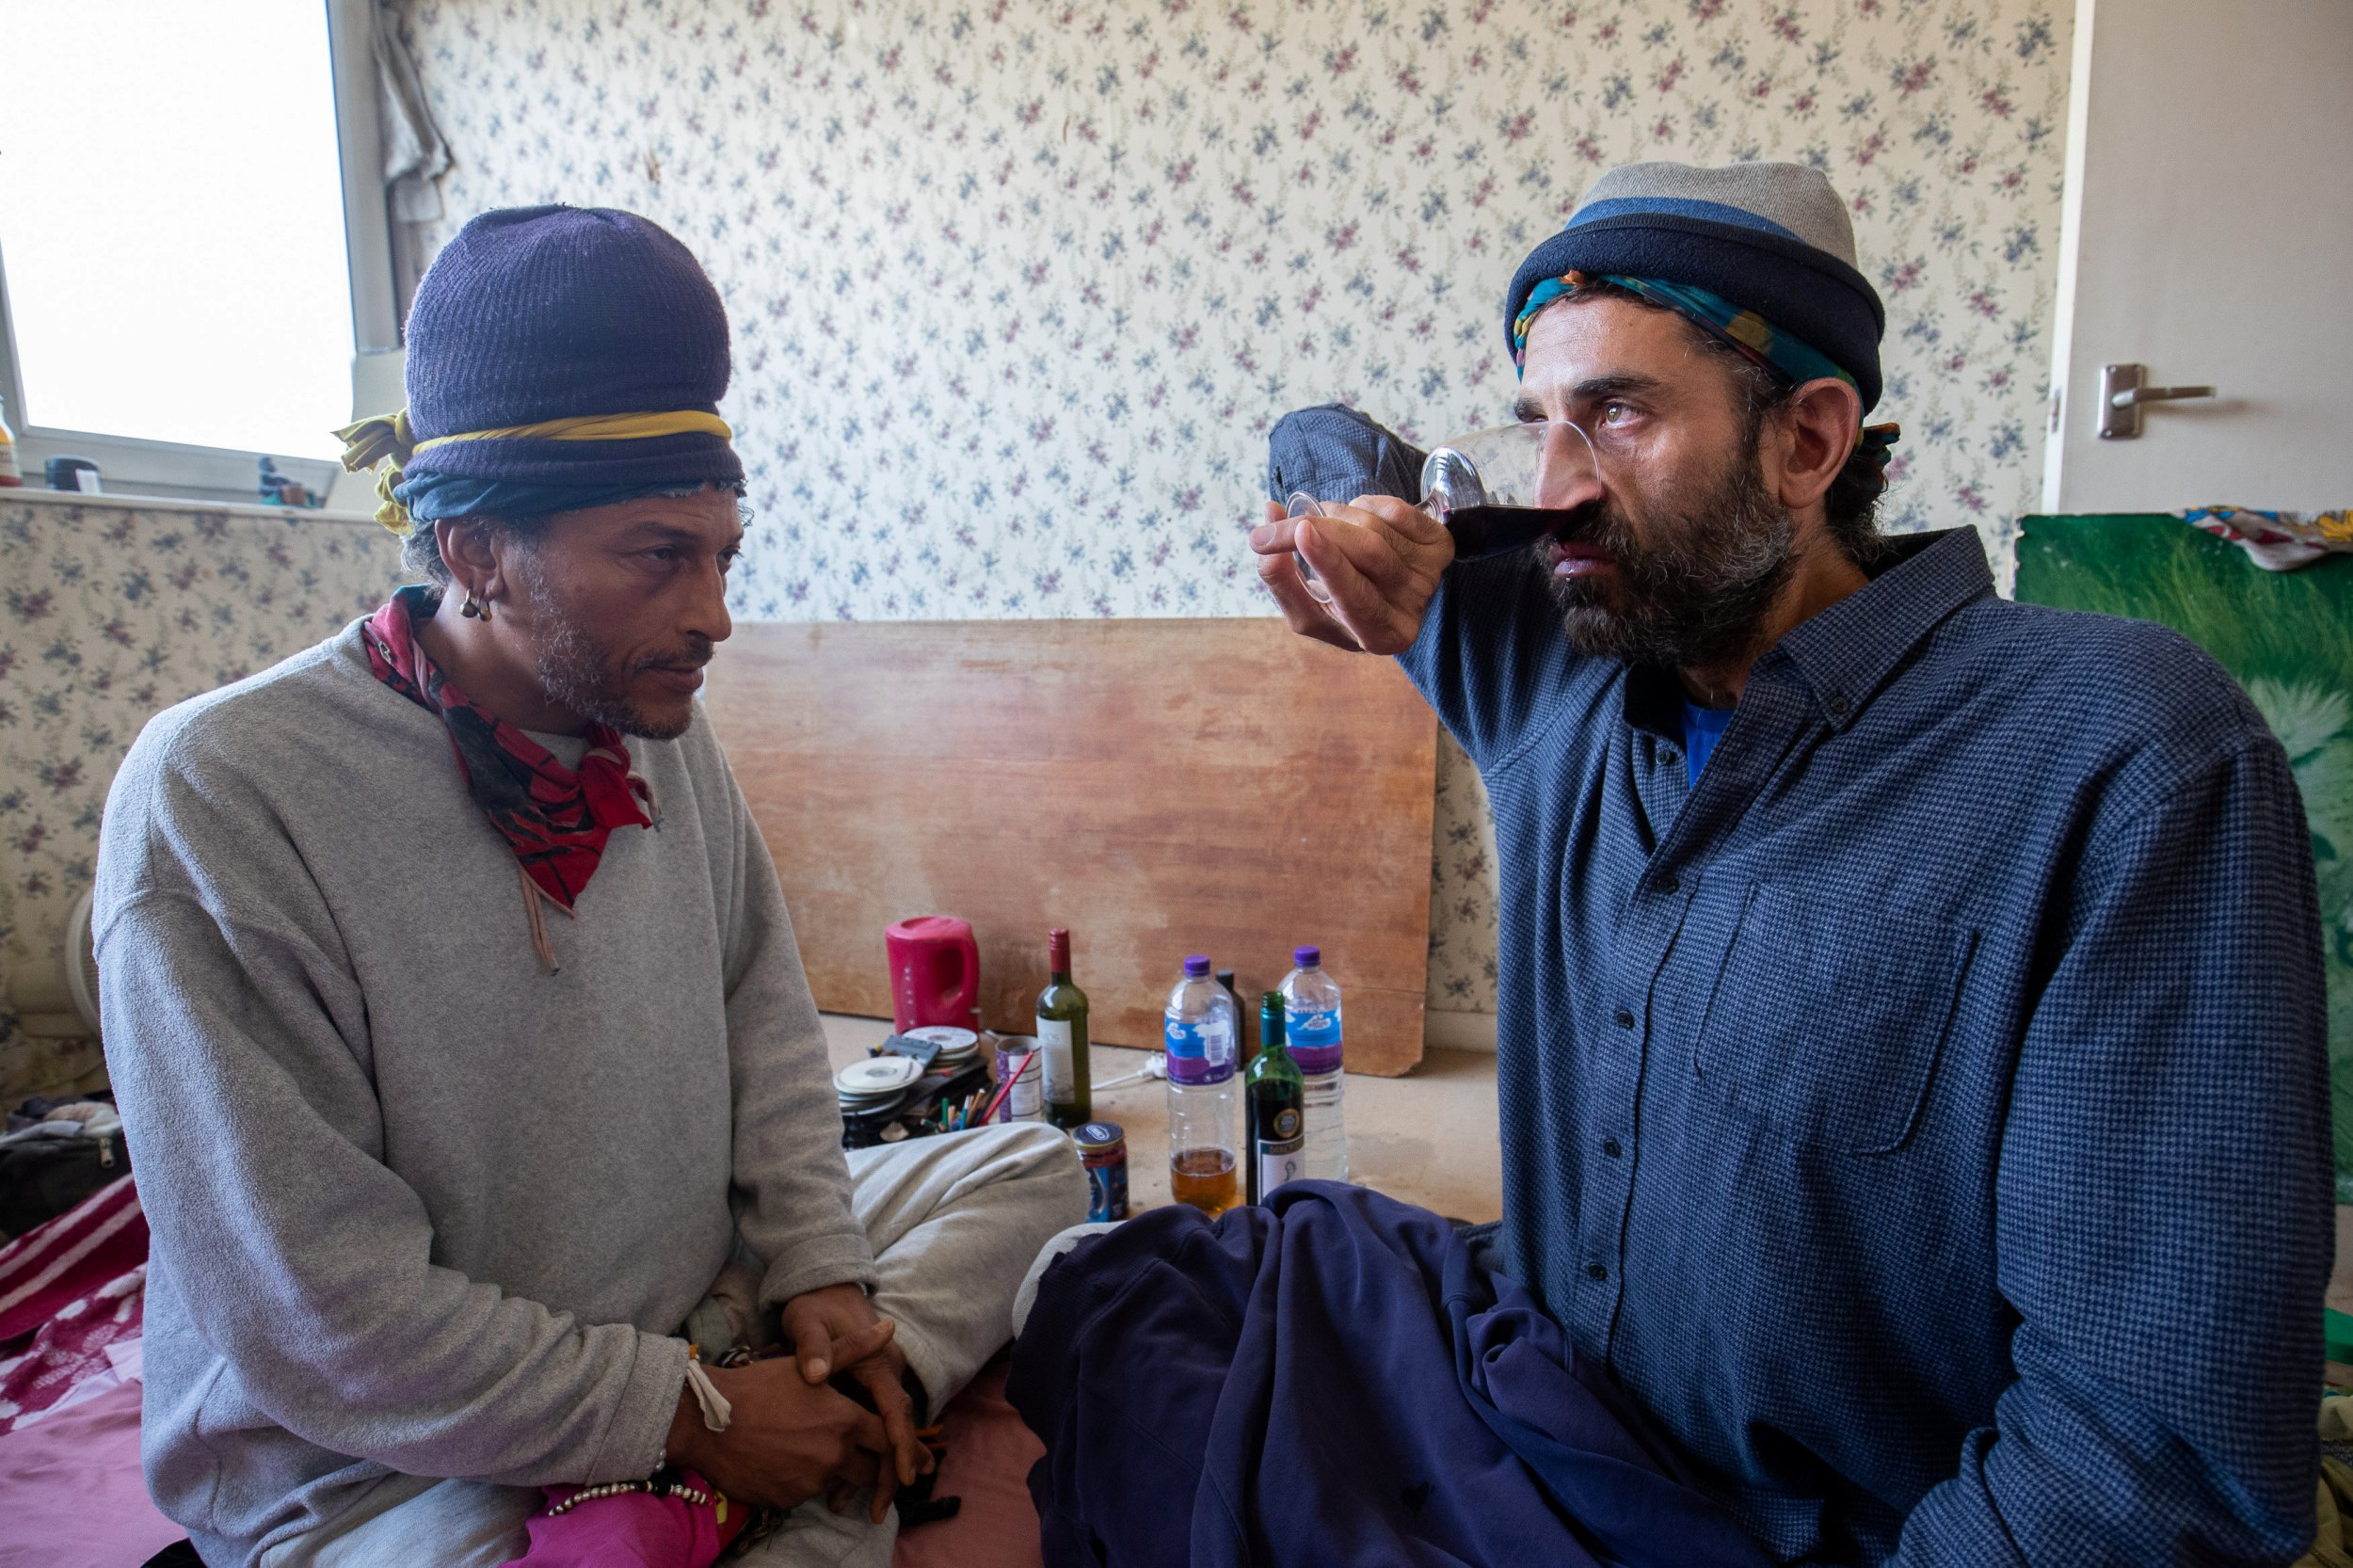 Kelly Saliba, 48, and Sam Cohen, 41, who drink various liquids including urine, water and wine through their noses. London, 15 April 2019. Sam drinks wine through his nose. See National News story NNwee. A yoga master claims he has not had a cold in almost twenty years, because every time he goes to the toilet he snorts a cup of his own wee.Sam Cohen, 41, has used a cup to funnel wee into his nostrils every time he goes to the loo for the last 19 years, and says he has never had a cold.The special needs teaching assistant claims it does wonders for his sex life and that it cures him of any illness.The vegan singleton, of Islington, north London, said he drinks his own wee - which he calls Auryn, the Celtic word for golden - every single day, and he even carries his own special cup with him.